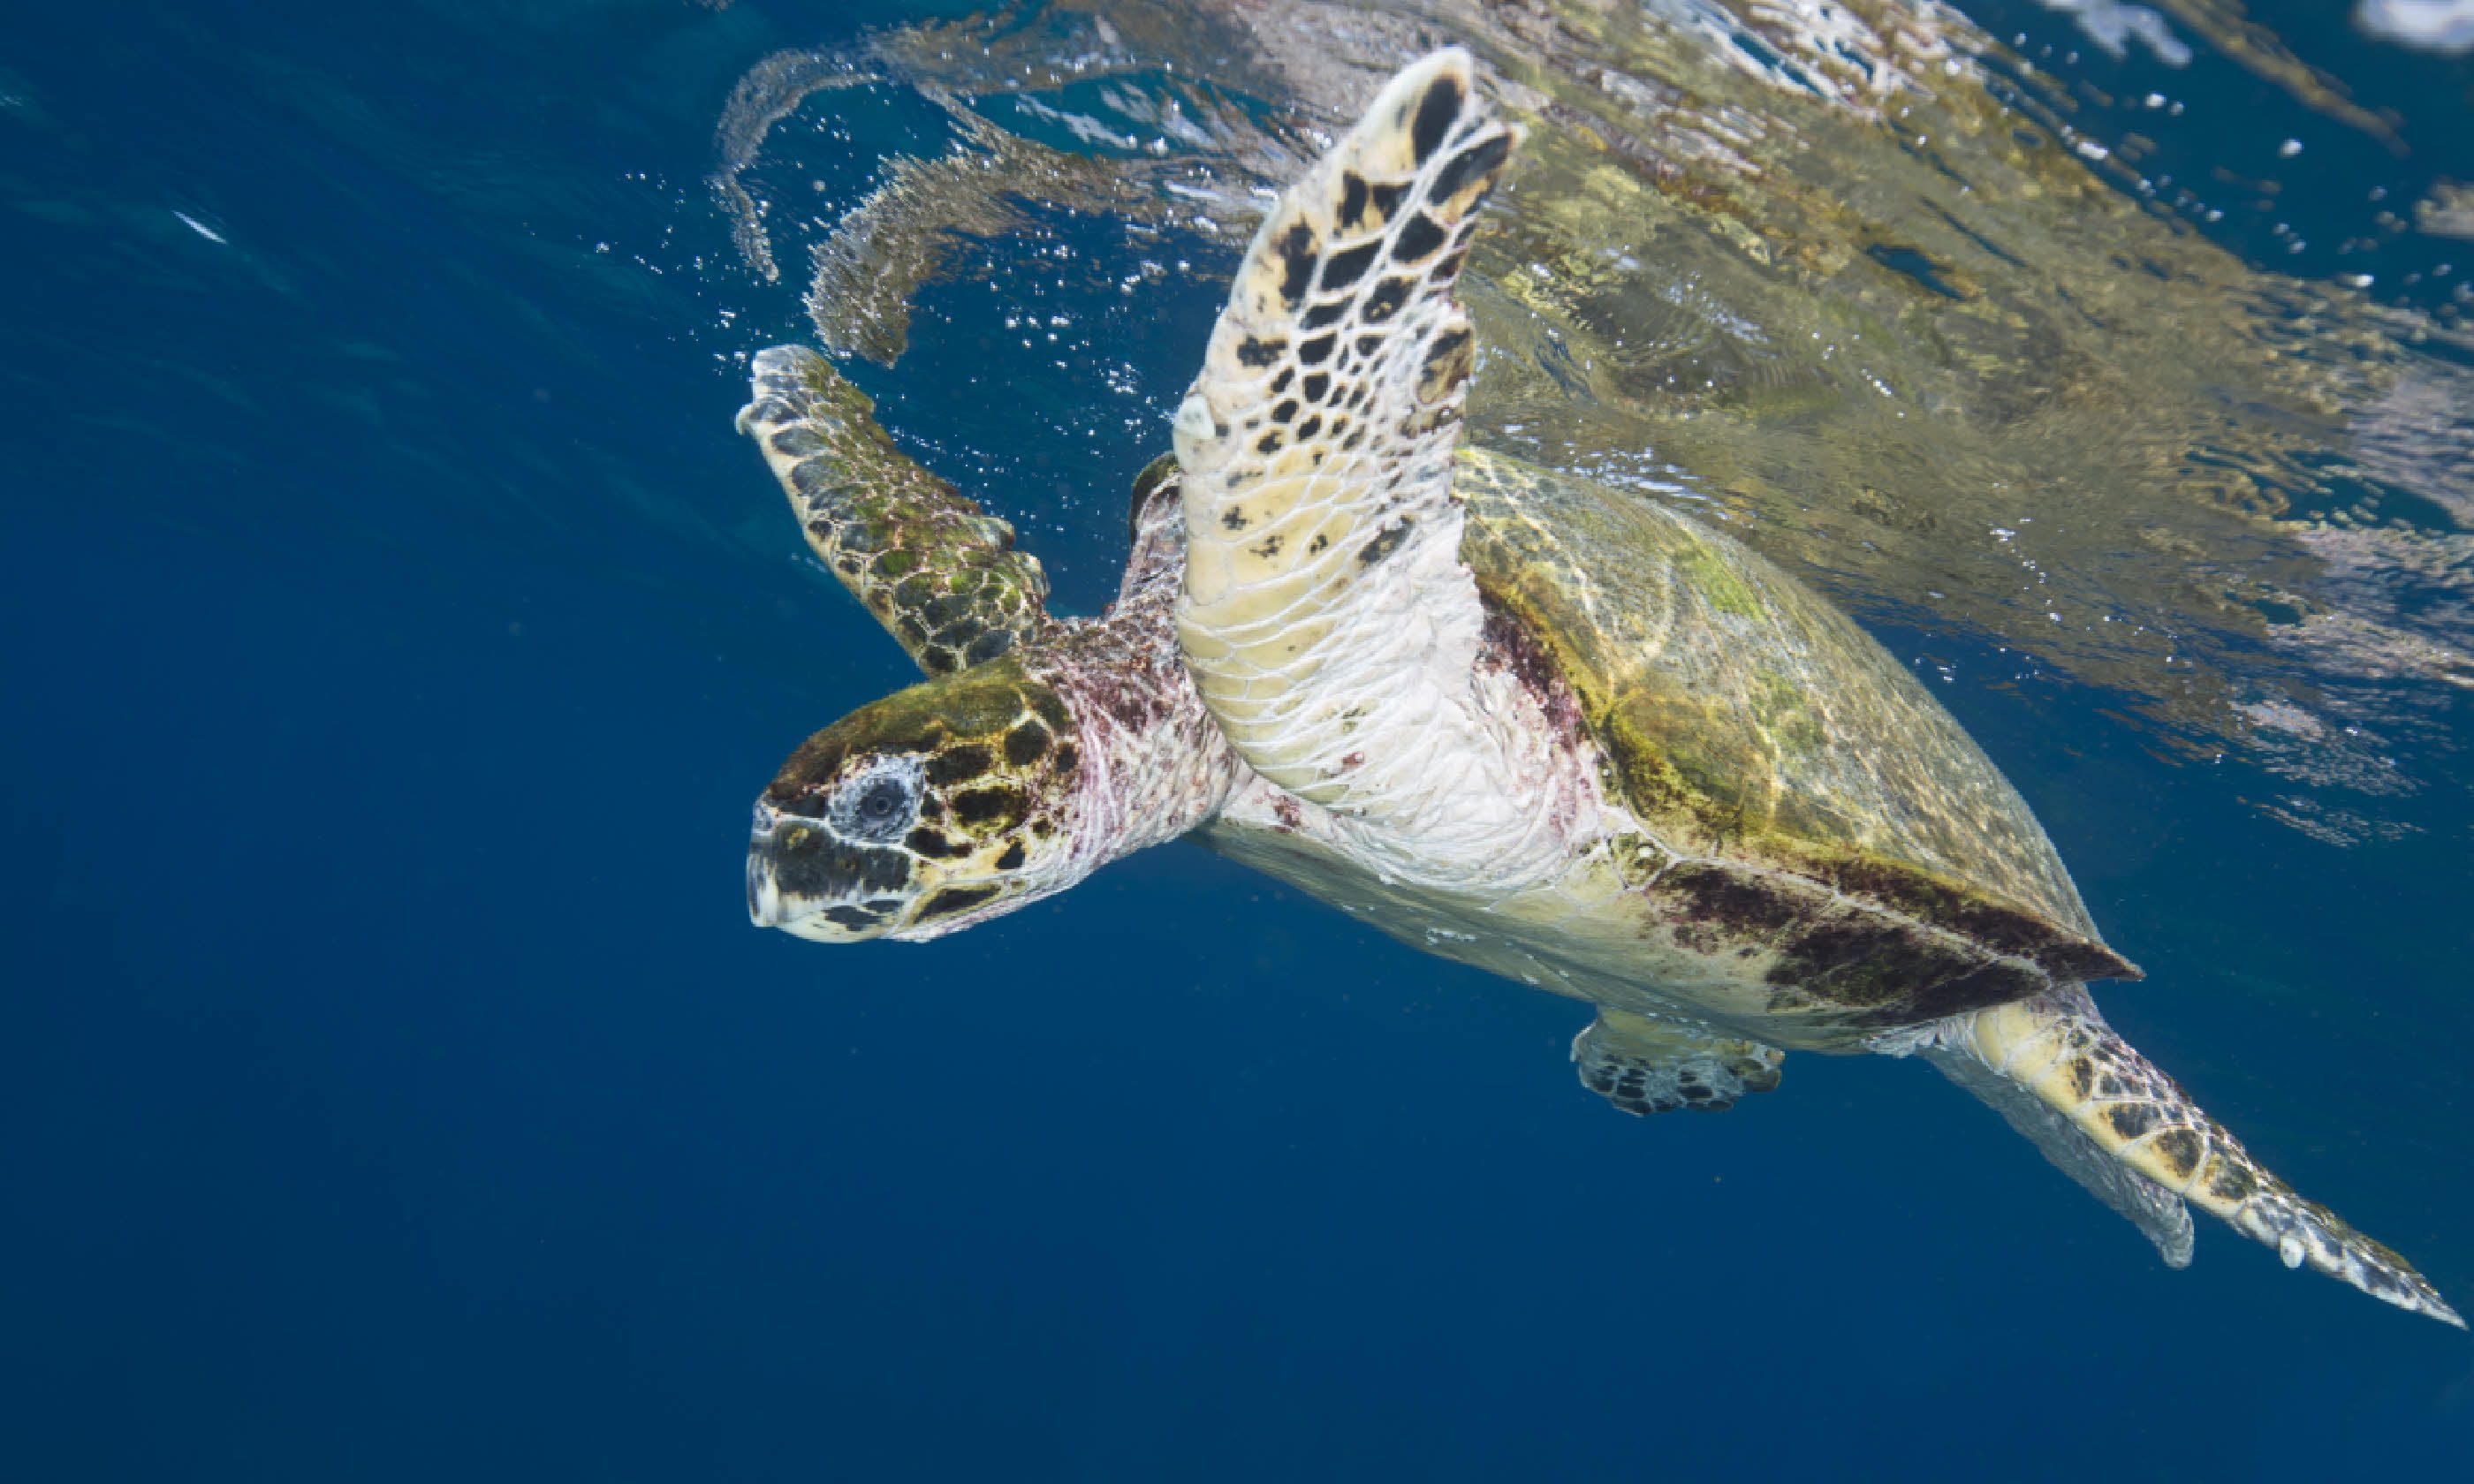 Green turtle swimming off the coast of Oman (Shutterstock)